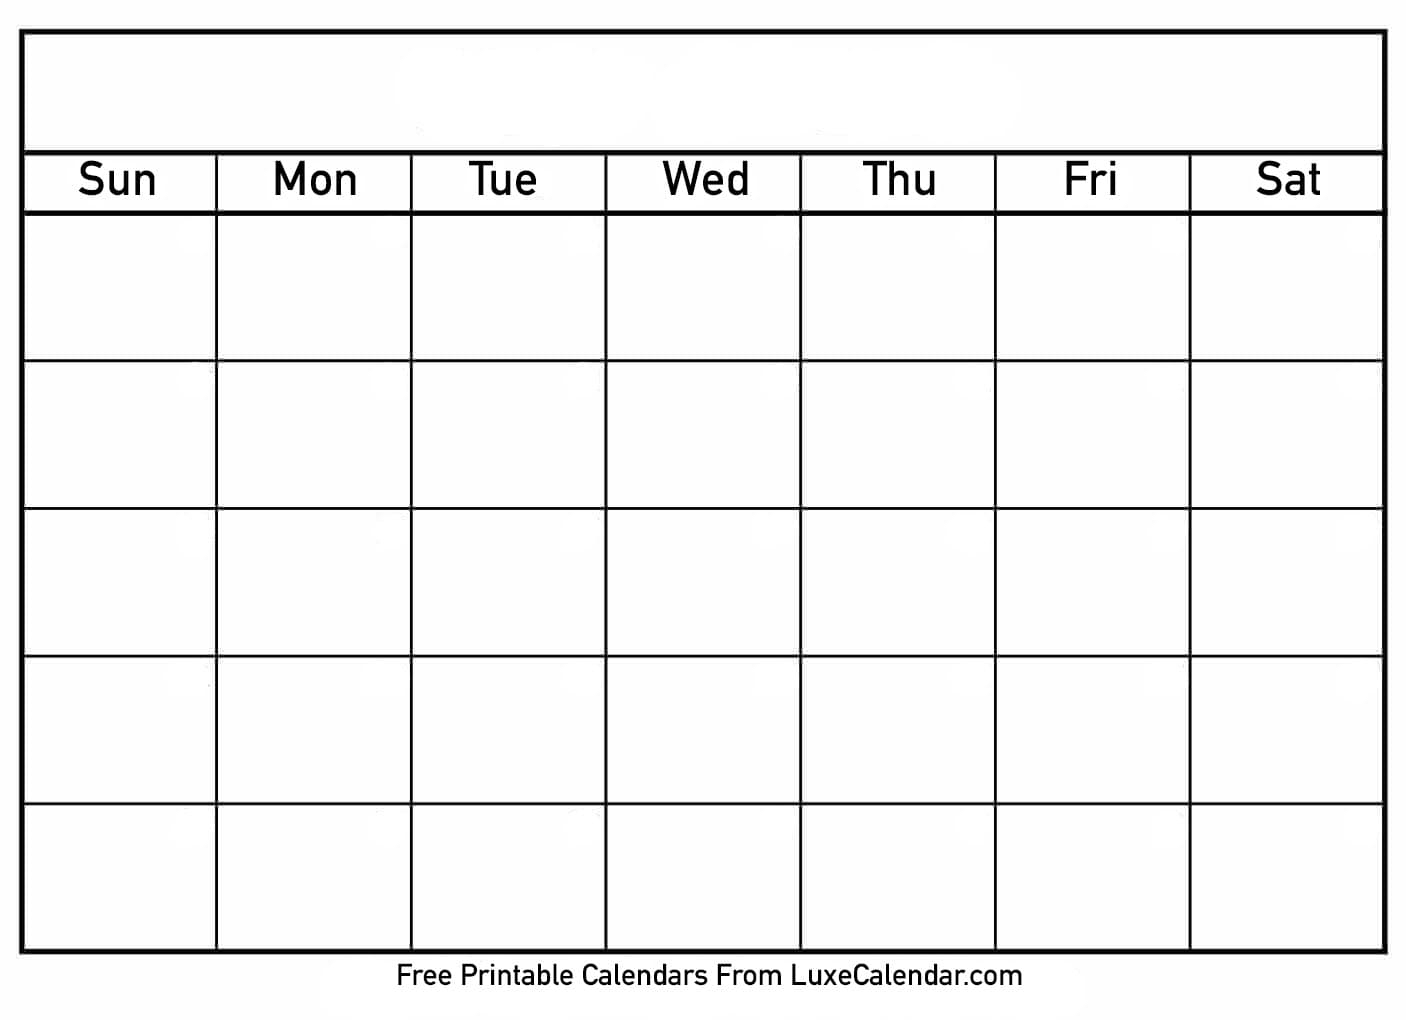 Blank Printable Calendar - Luxe Calendar in Blank Printable Calendar Pages